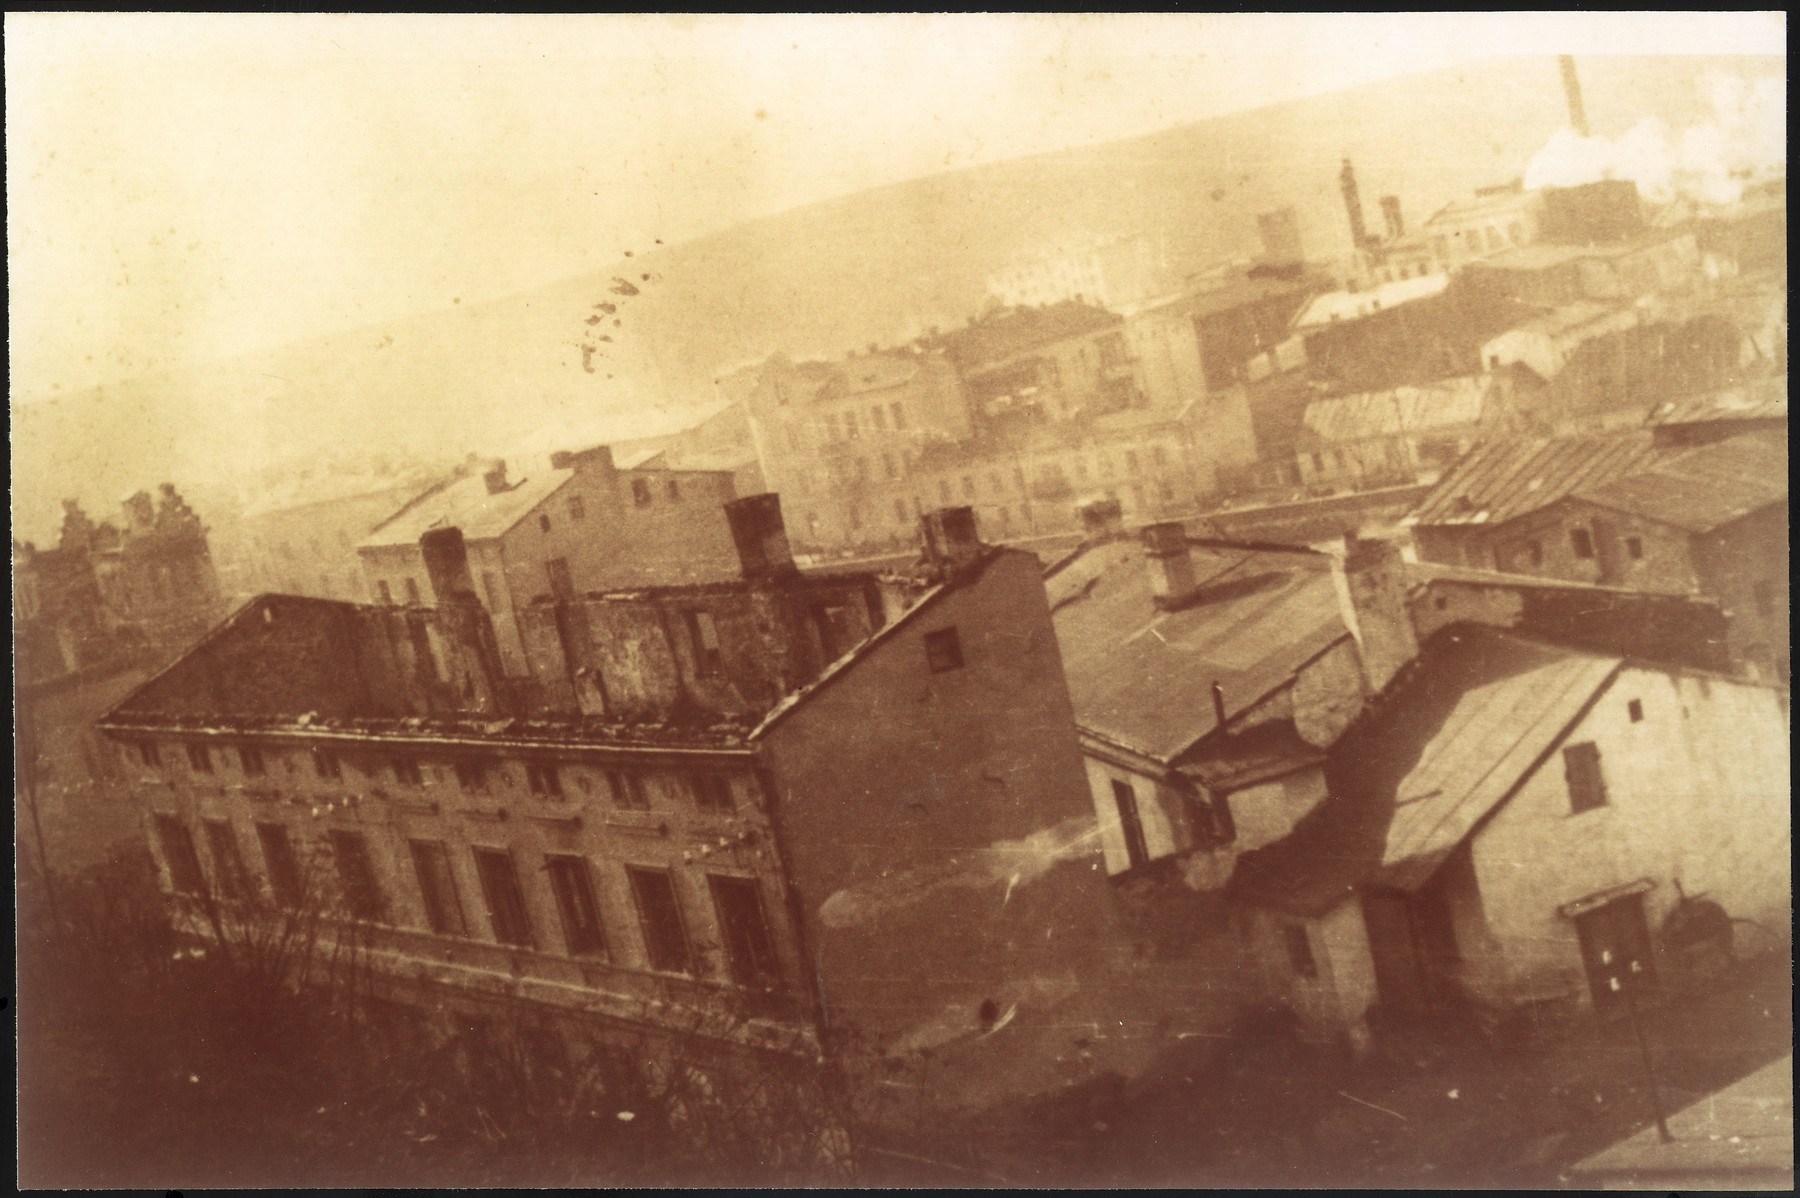 View of a bombed out building in Bedzin.